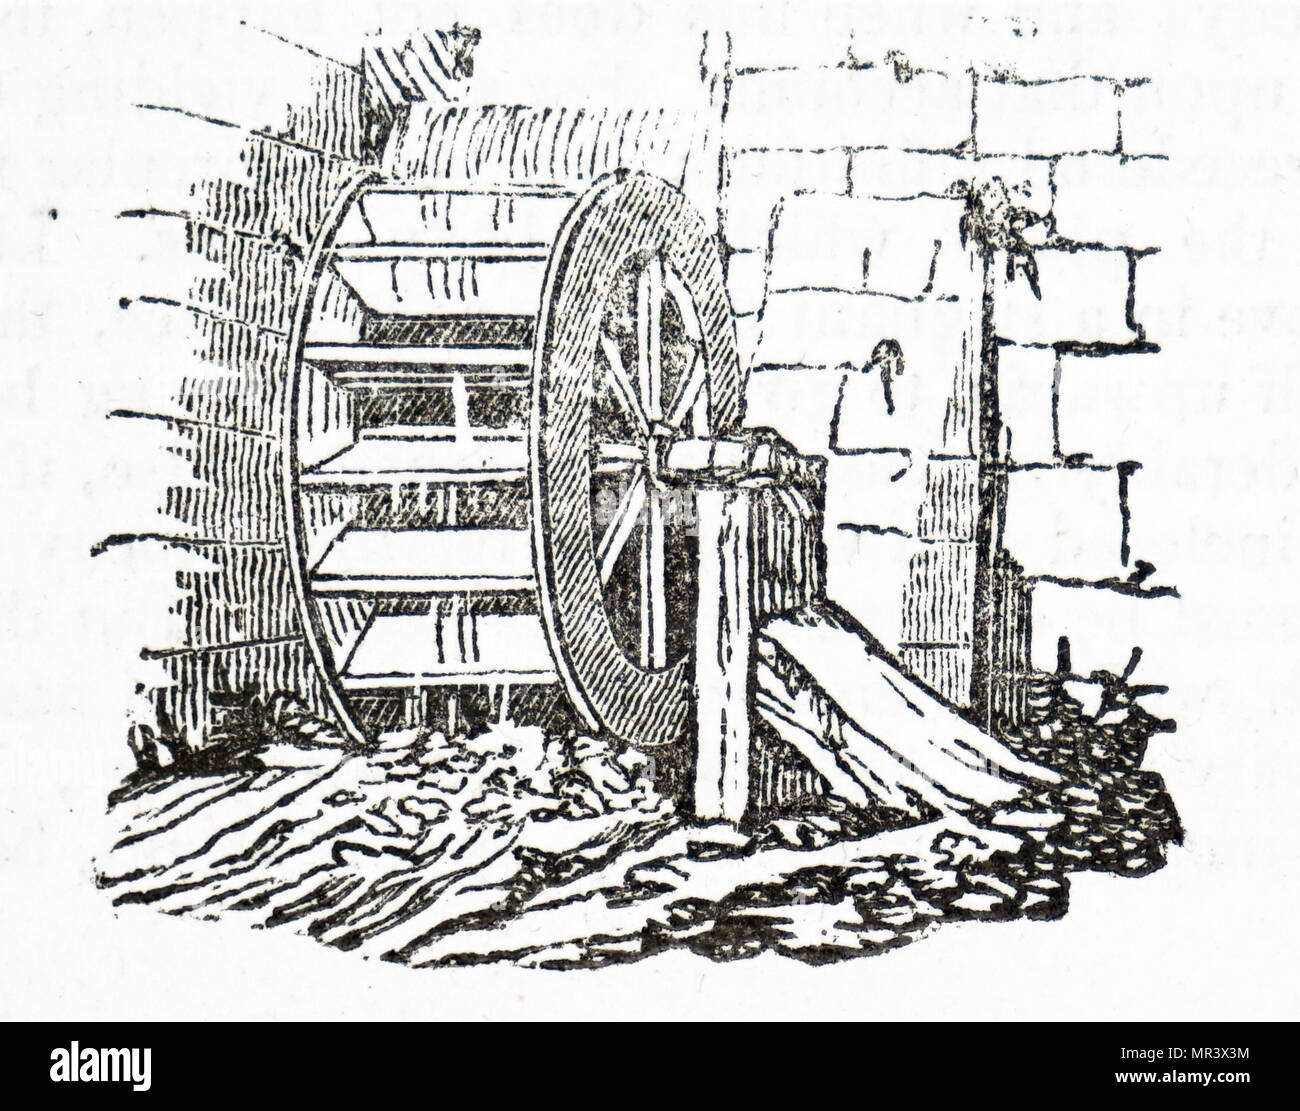 Engraving depicting a water wheel used to drive the machinery at a cotton mill. Dated 19th century Stock Photo